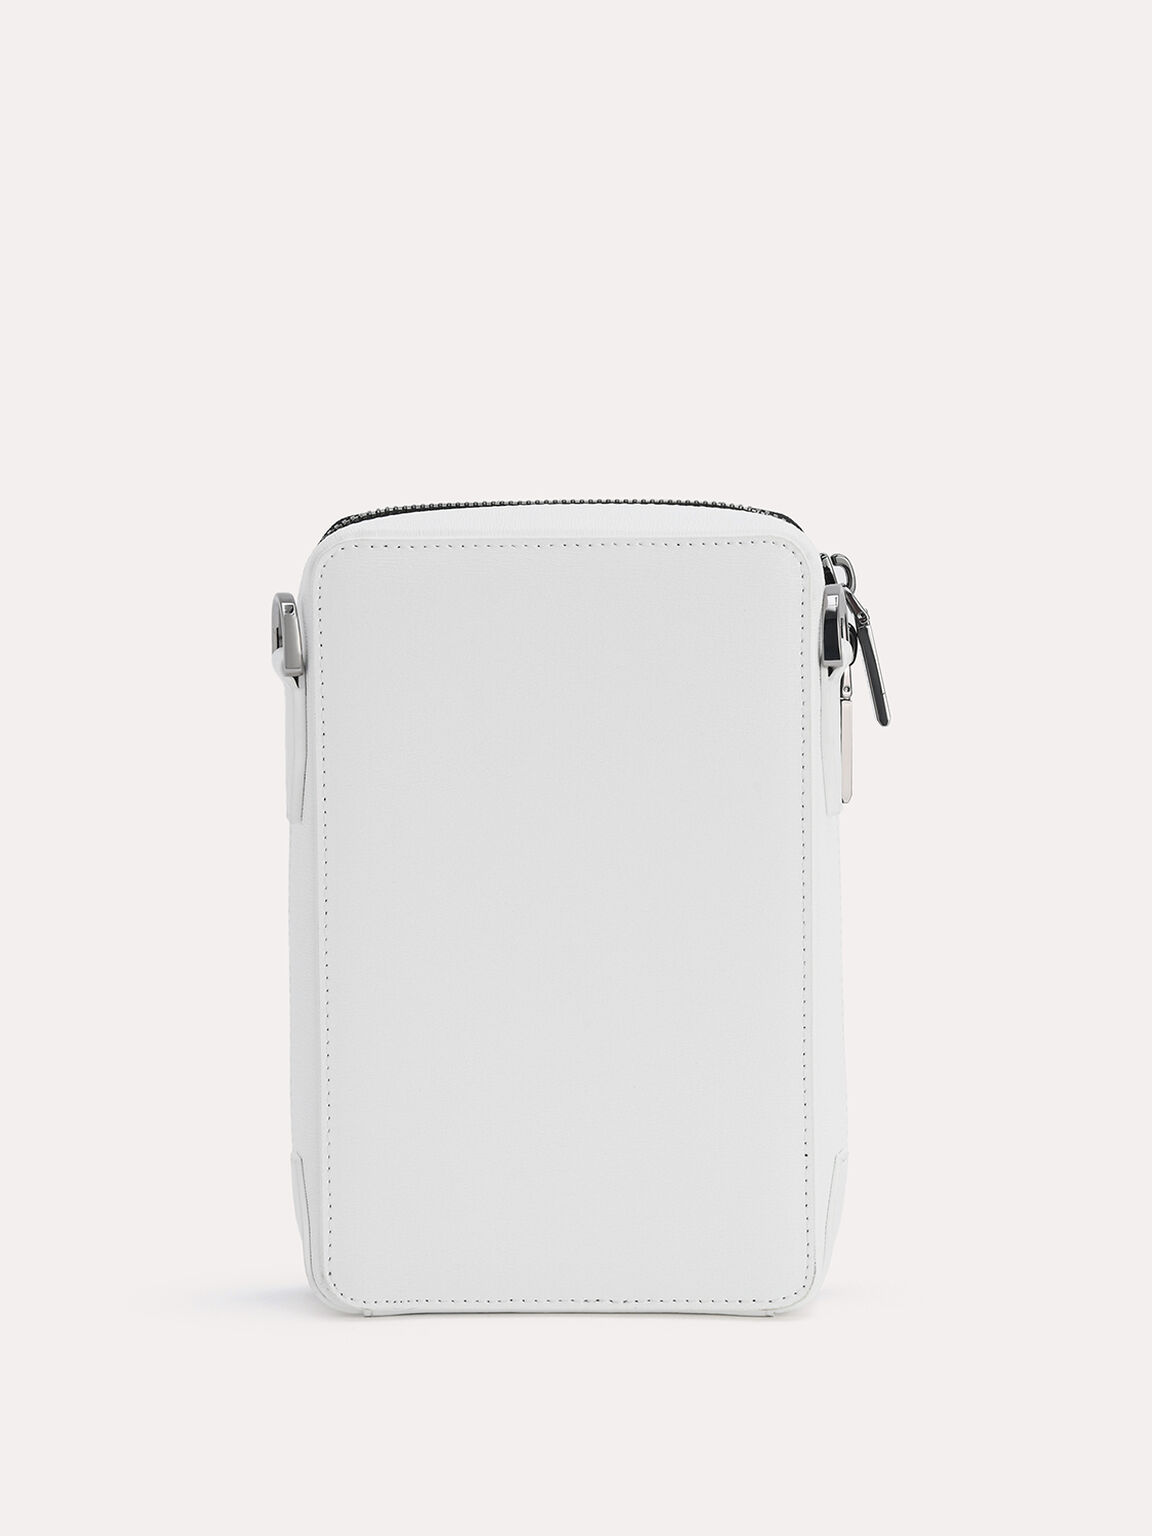 Textured Leather Phone Pouch, White, hi-res